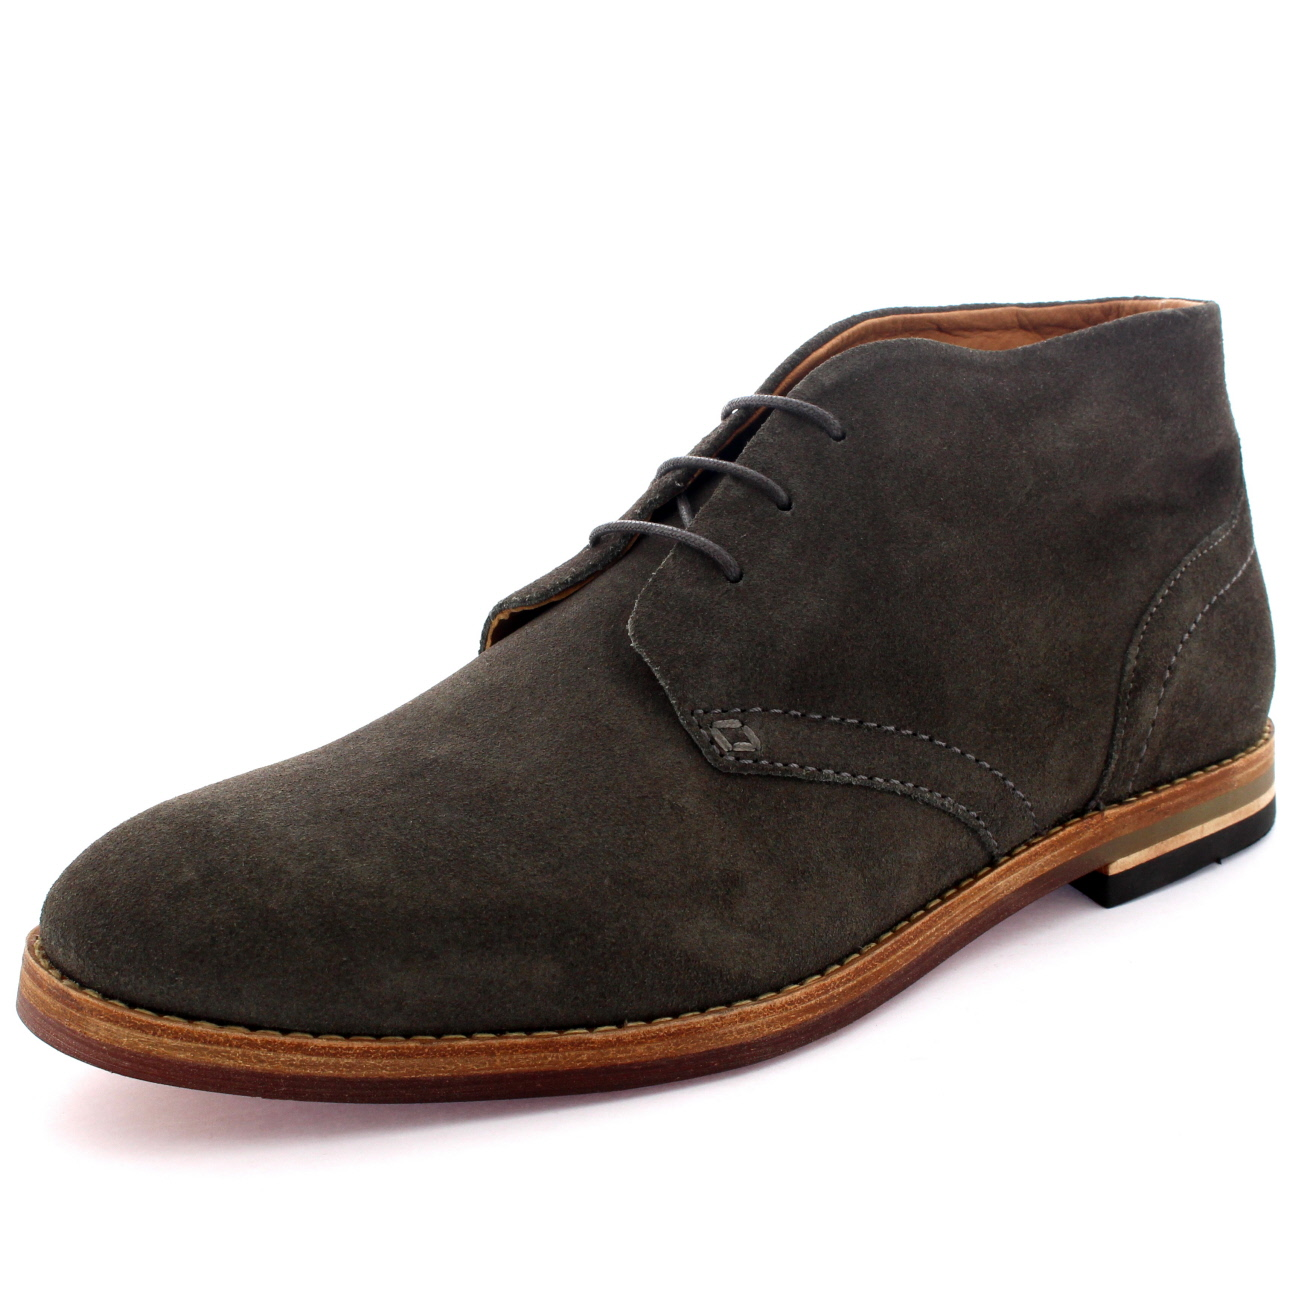 Online Store,Leather Boots,Military,Work Boots,Chelsea Boots, - United Kingdom,We do our best to satisfy all of our customers' expectations.